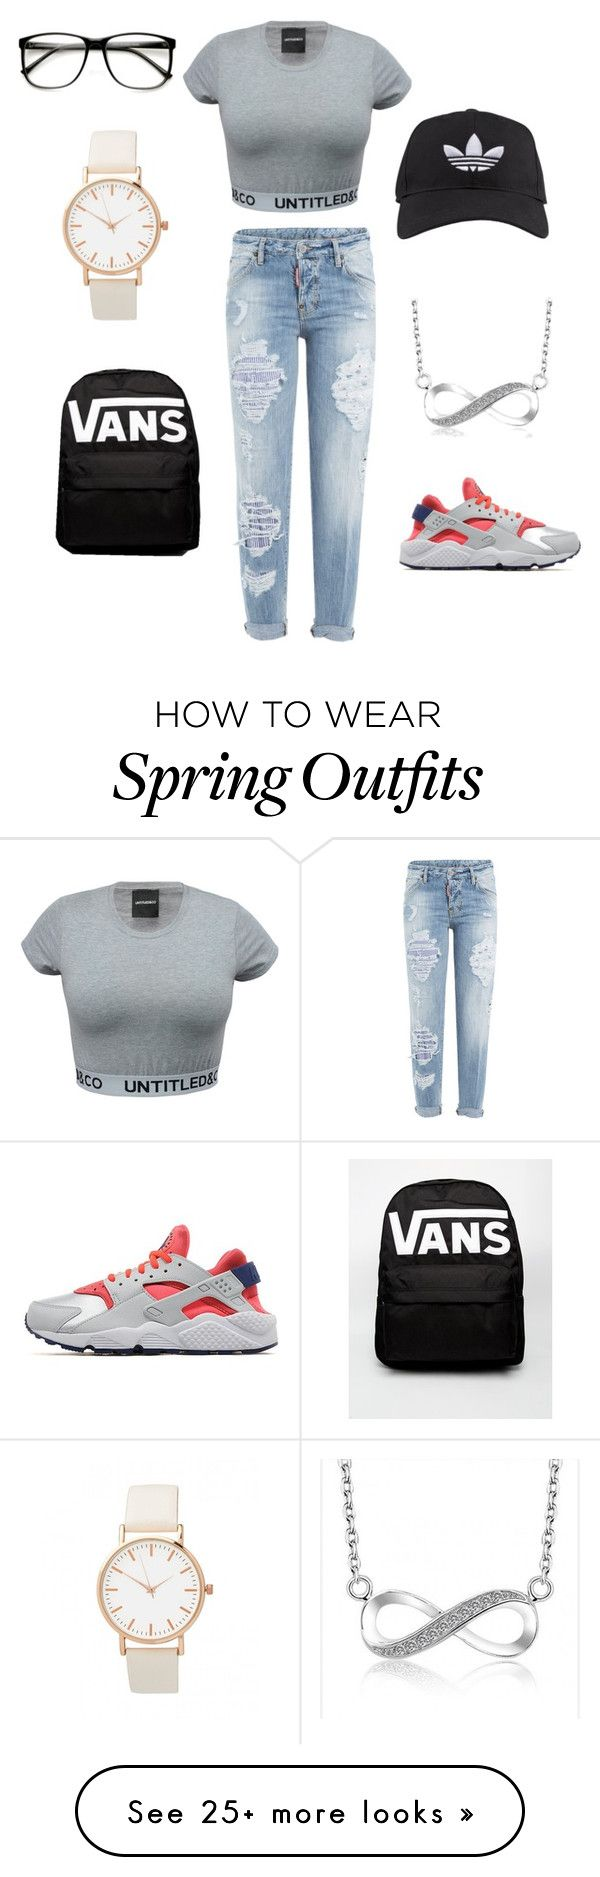 """""""French outfit #spring/summer"""" by raiyleee on Polyvore featuring NIKE, Dsquared2, adidas, Vans, women's clothing, women, female, woman, misses and juniors"""